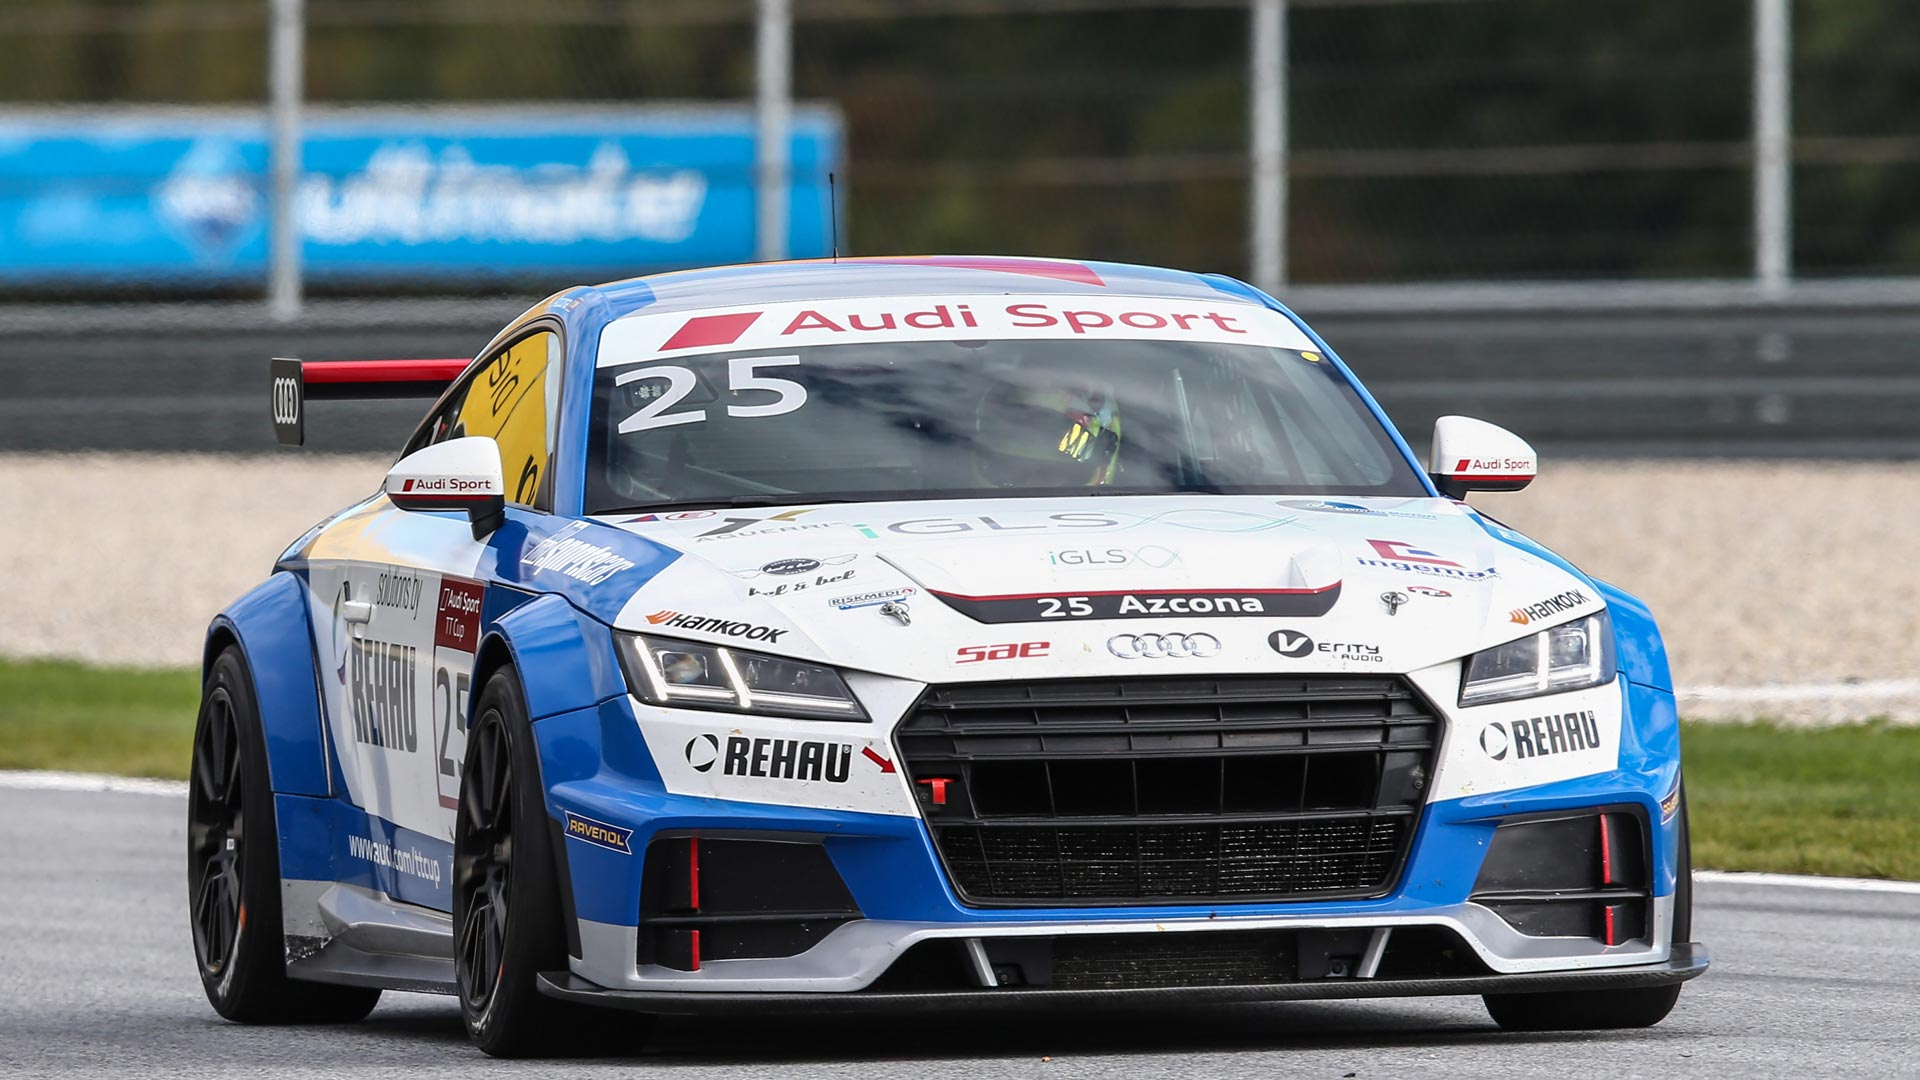 The sixth round of the Audi Sport TT Cup